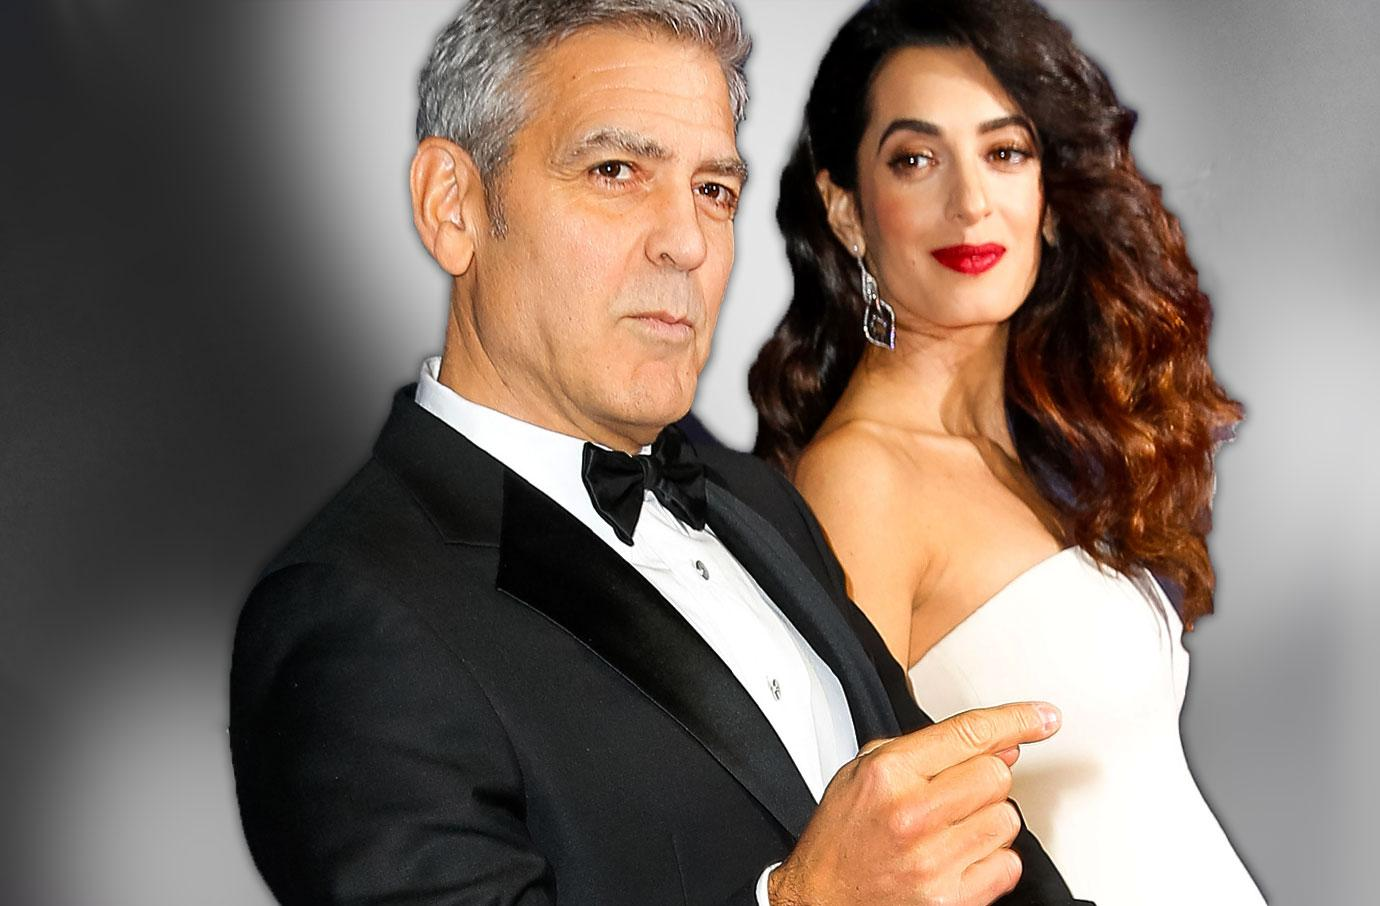 George Clooney Twins Security Baby Bouncers